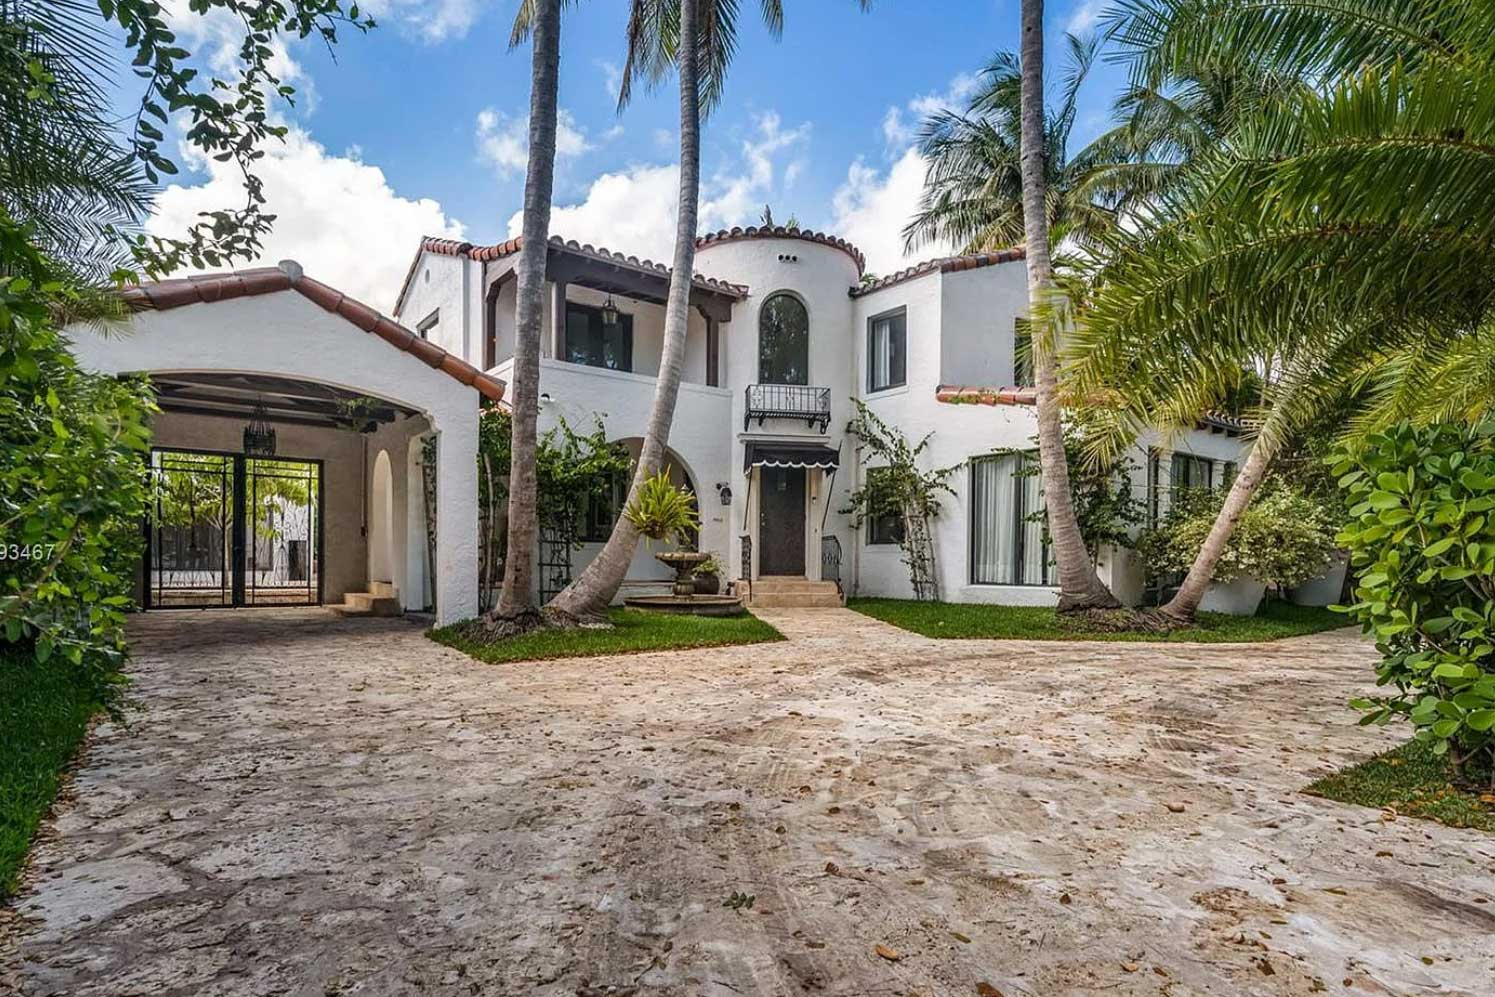 Miraculous 9 Beautiful Historical Houses For Sale In Southeast Florida Interior Design Ideas Gresisoteloinfo